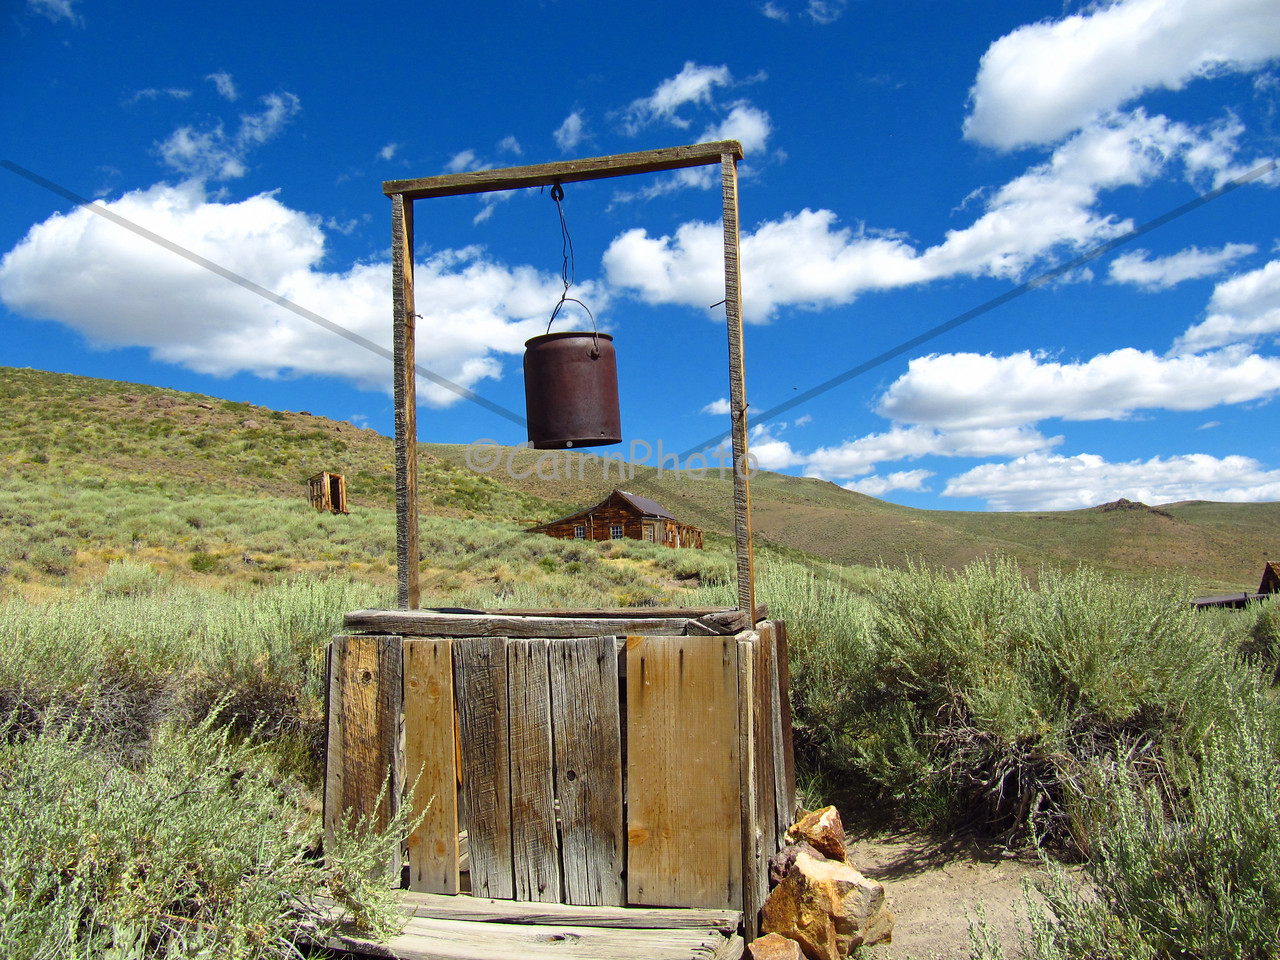 Bucket hanging over a well in Bodie State Park, Bodie California